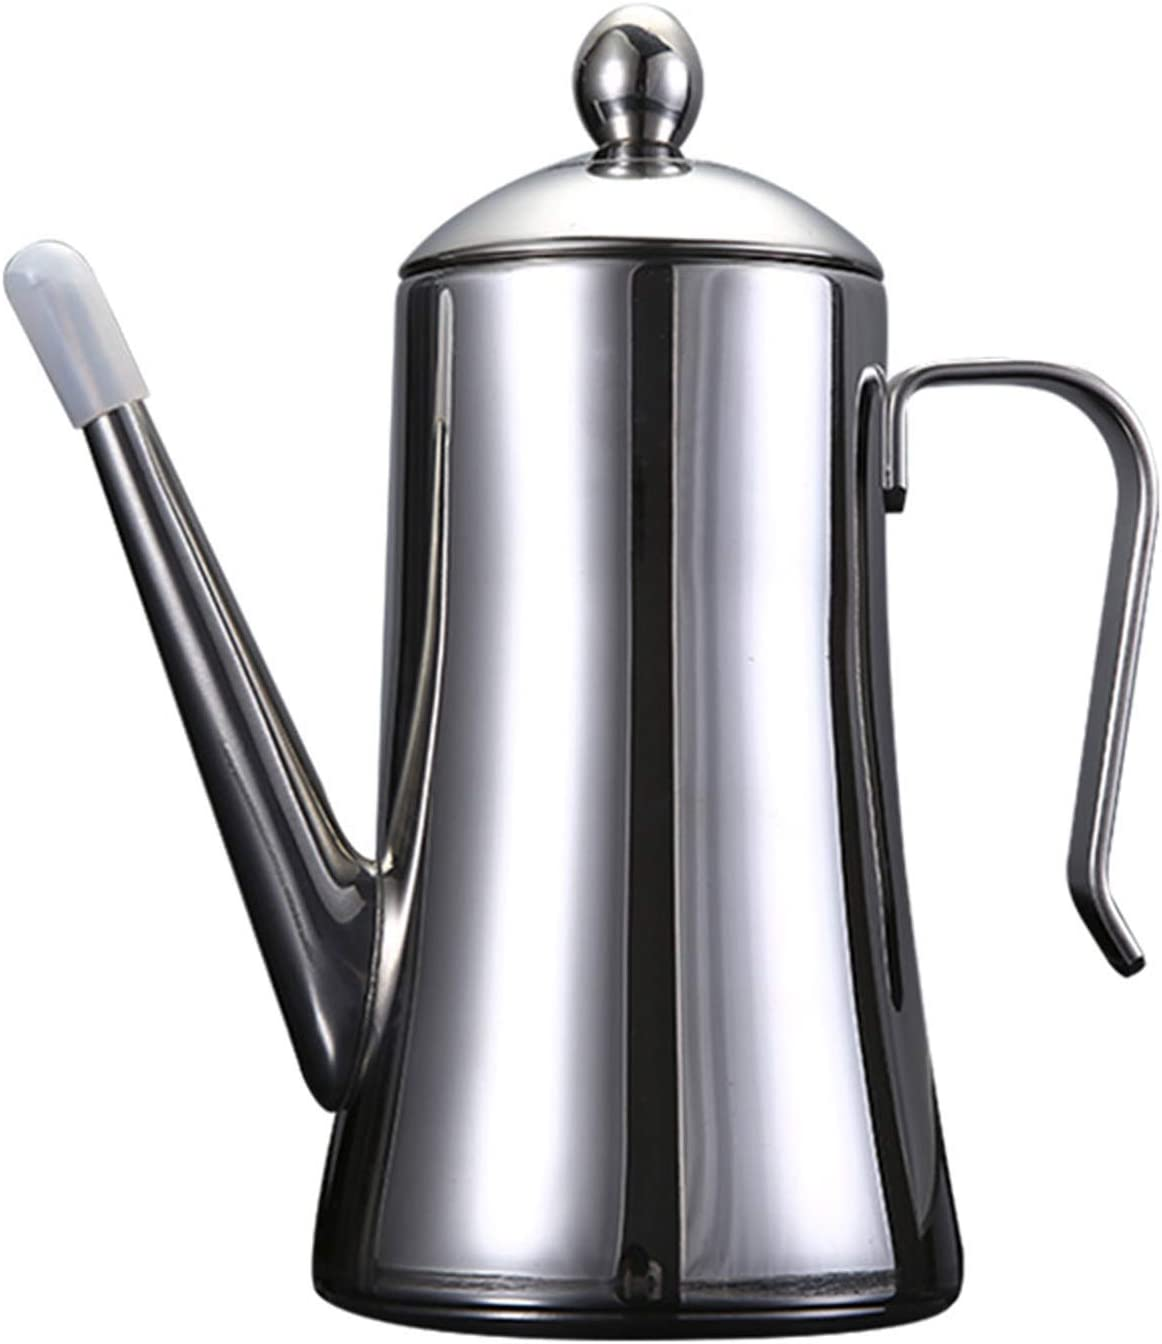 OUTHOME Oil Dispenser New product Stainless Ranking TOP19 Steel 1.5L C Large 1L Can